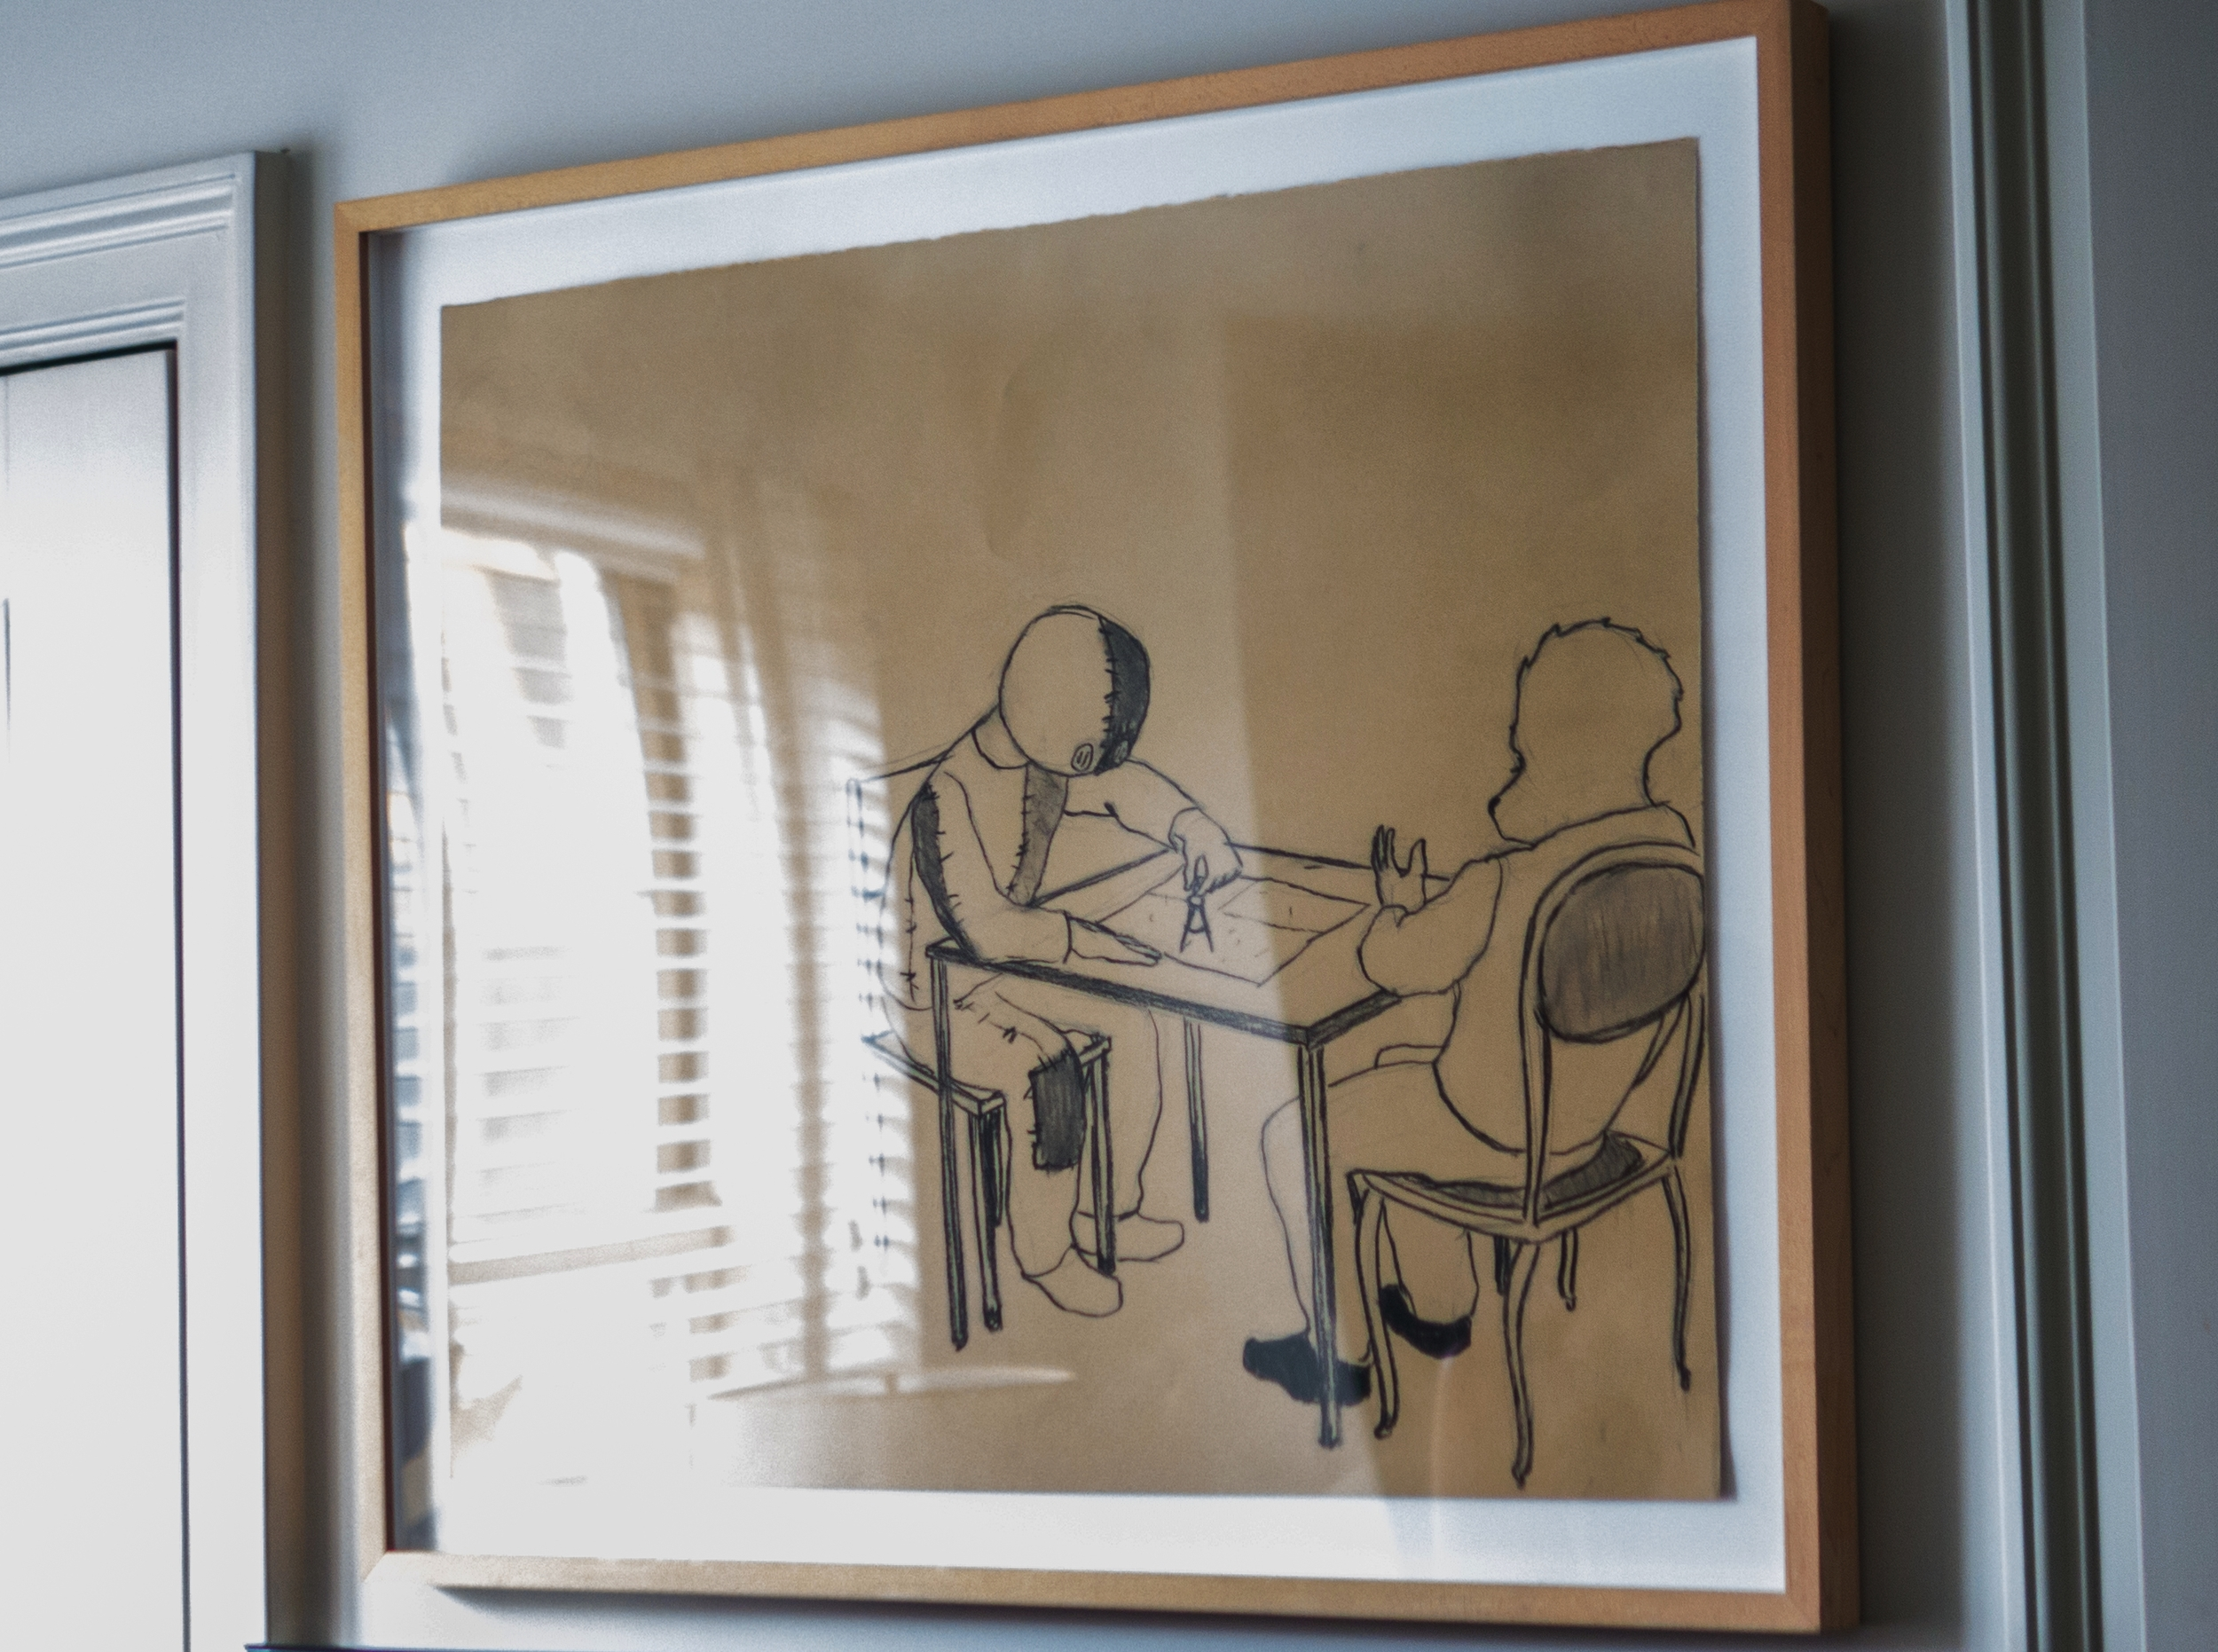 Kojo Griffin's drawing is ambiguous, dark and intriguing.